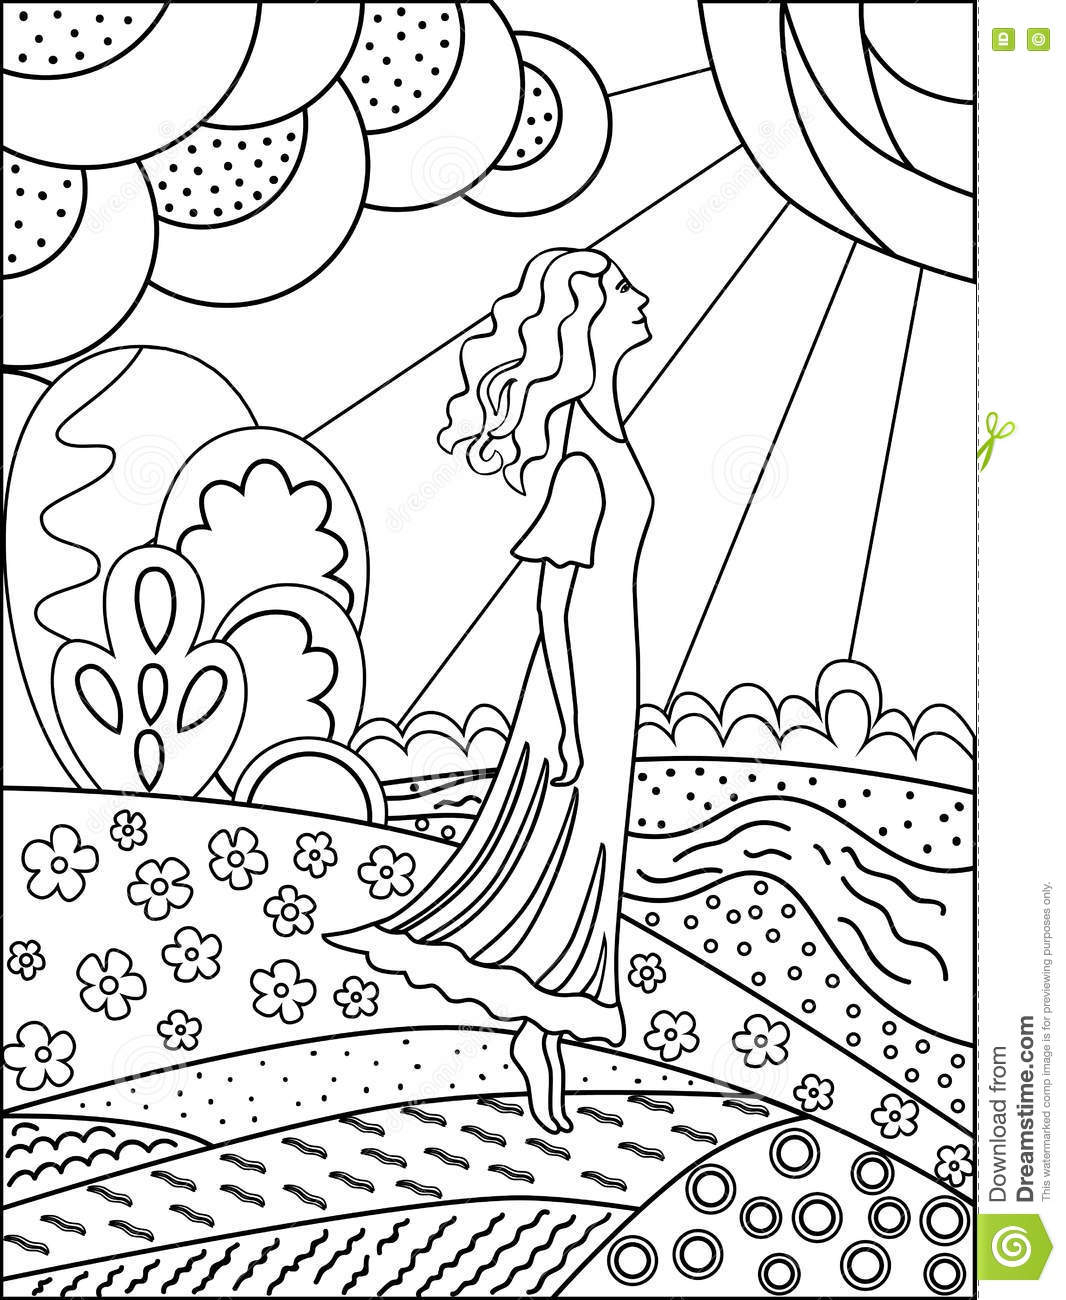 Landscape Outline Drawing At Getdrawings